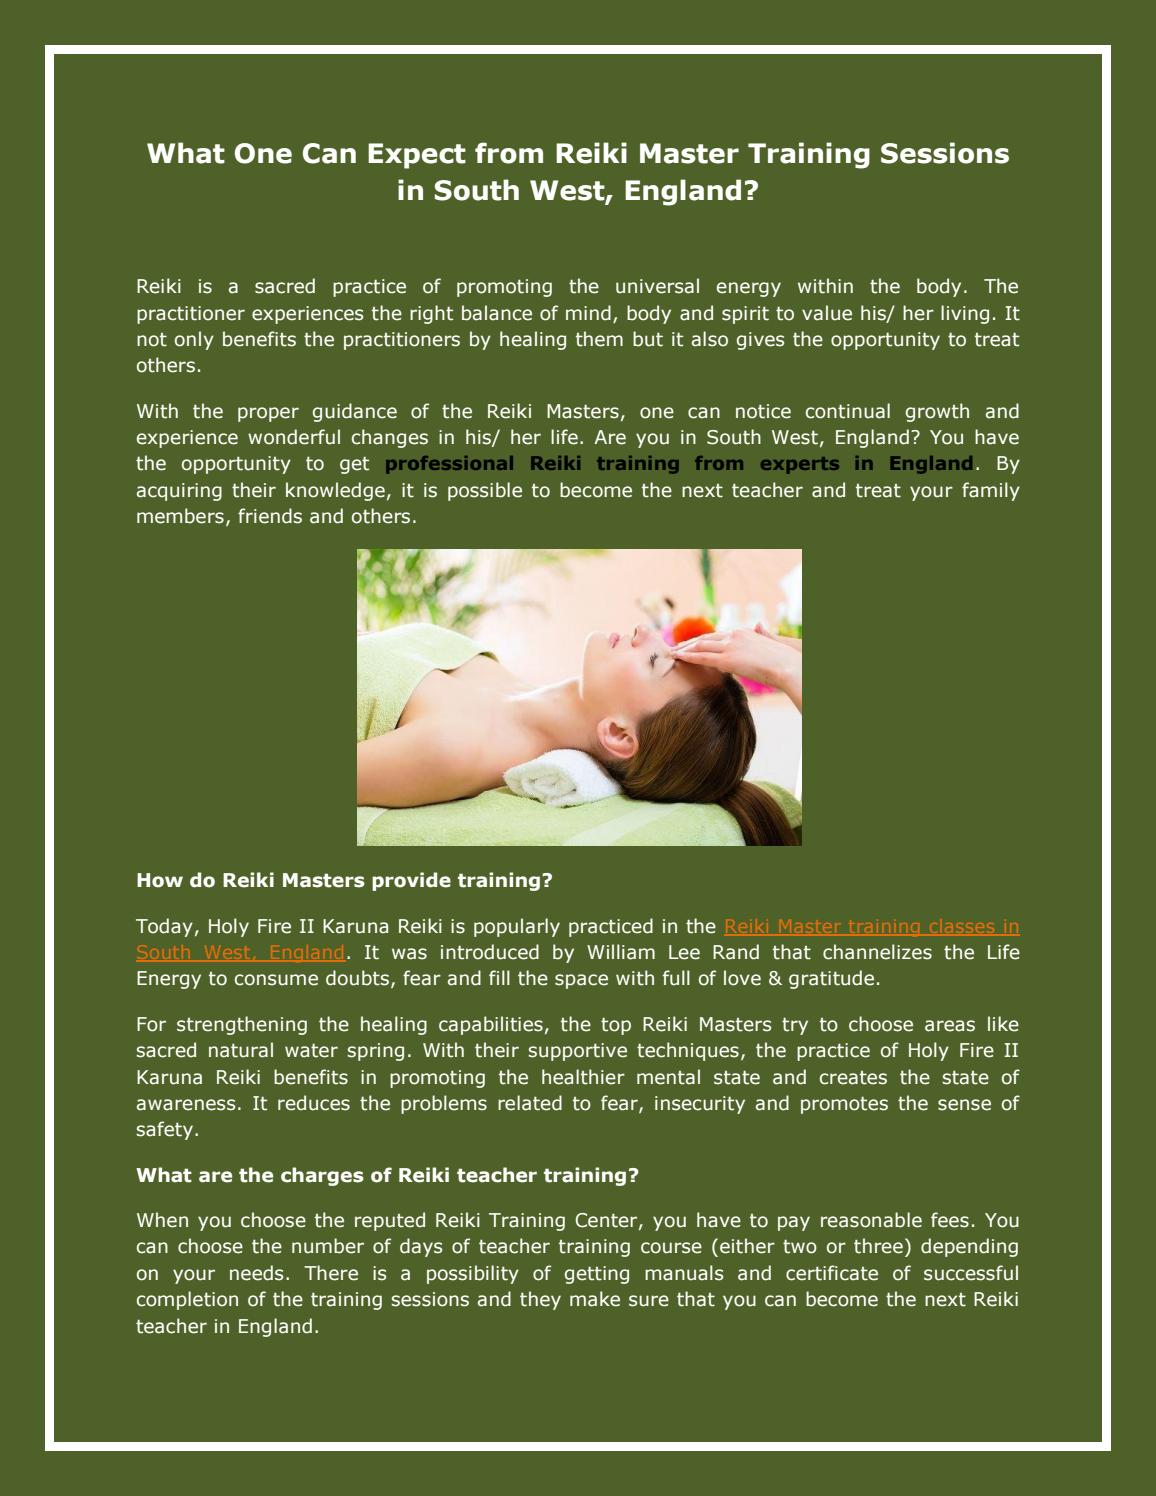 What One Can Expect from Reiki Master Training Sessions in South West,  England? by reikihealing - issuu